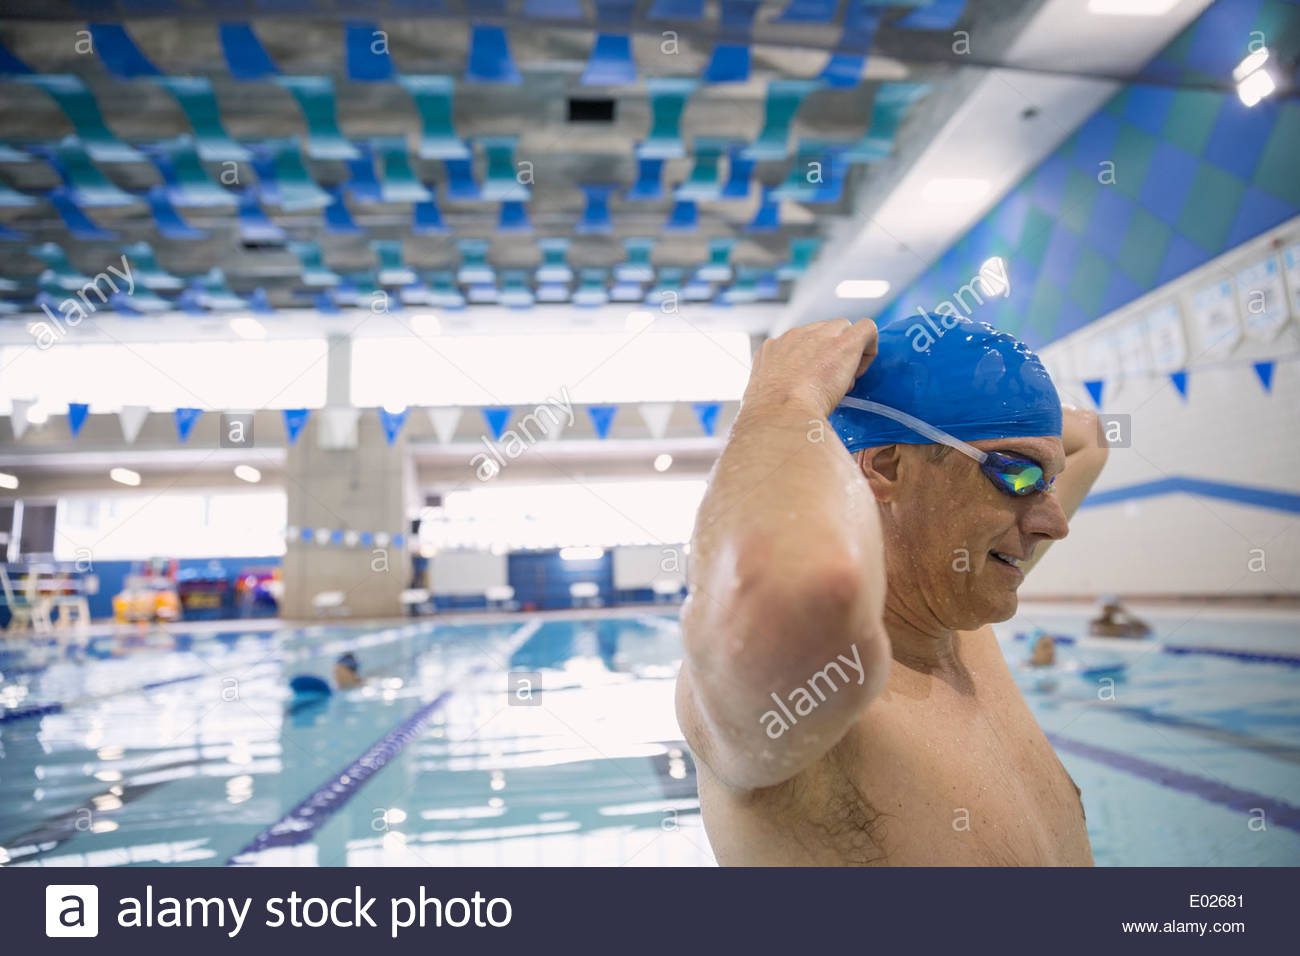 Man putting on goggles at indoor swimming pool - Stock Image